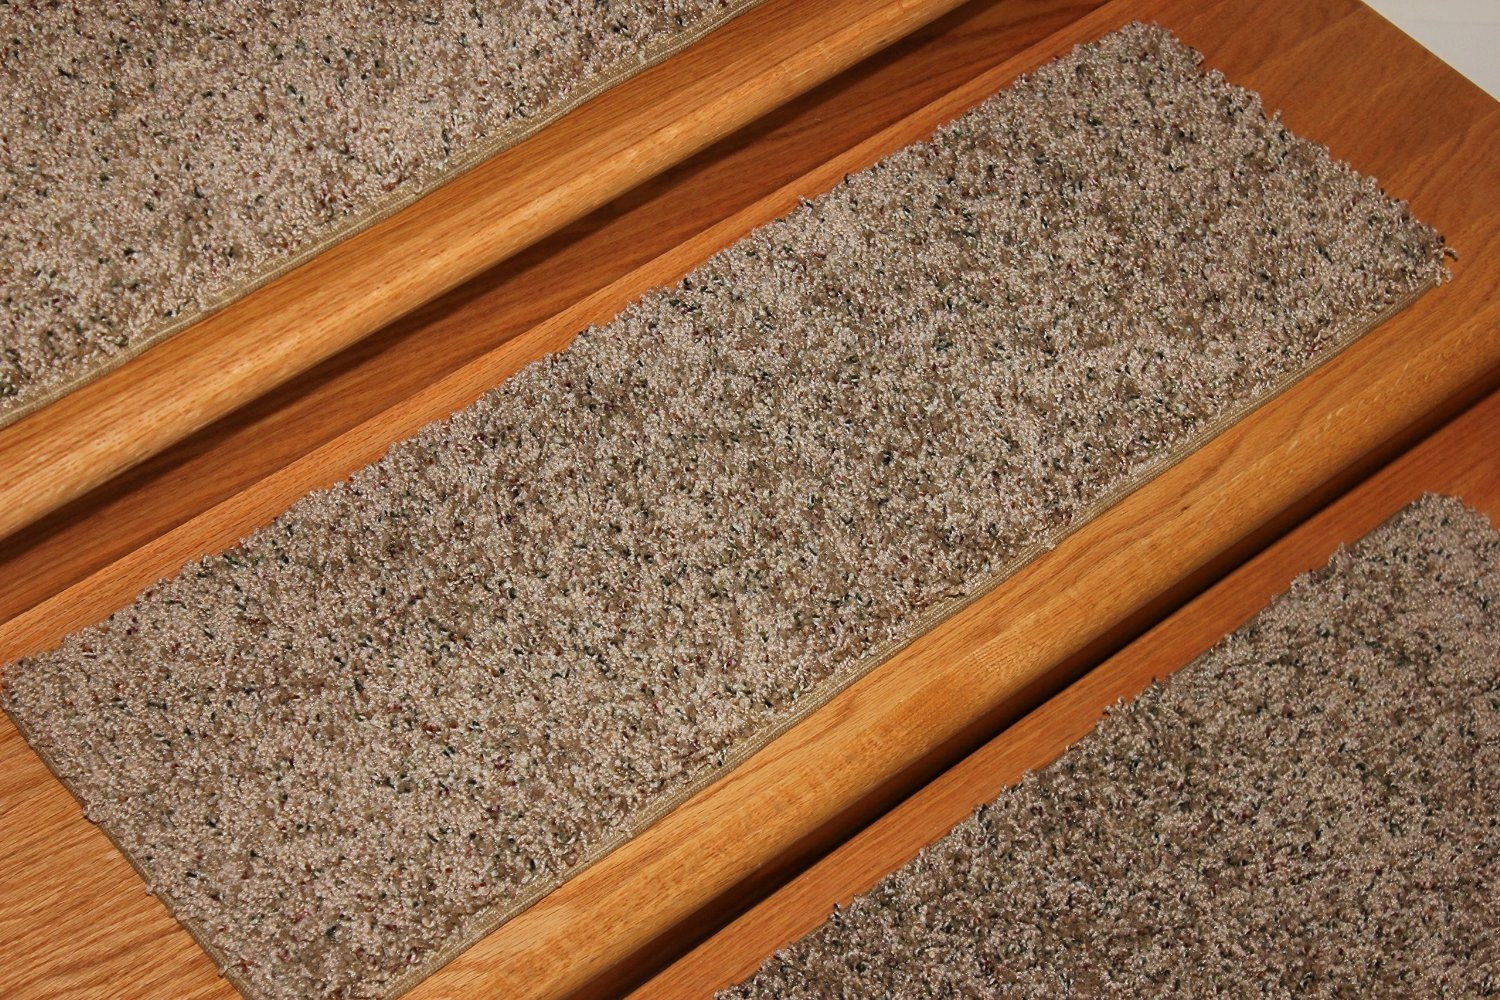 8×24 Dog Assist Carpet Stair Treads Painted Tan Within Carpet Stair Treads For Dogs (Image 1 of 15)